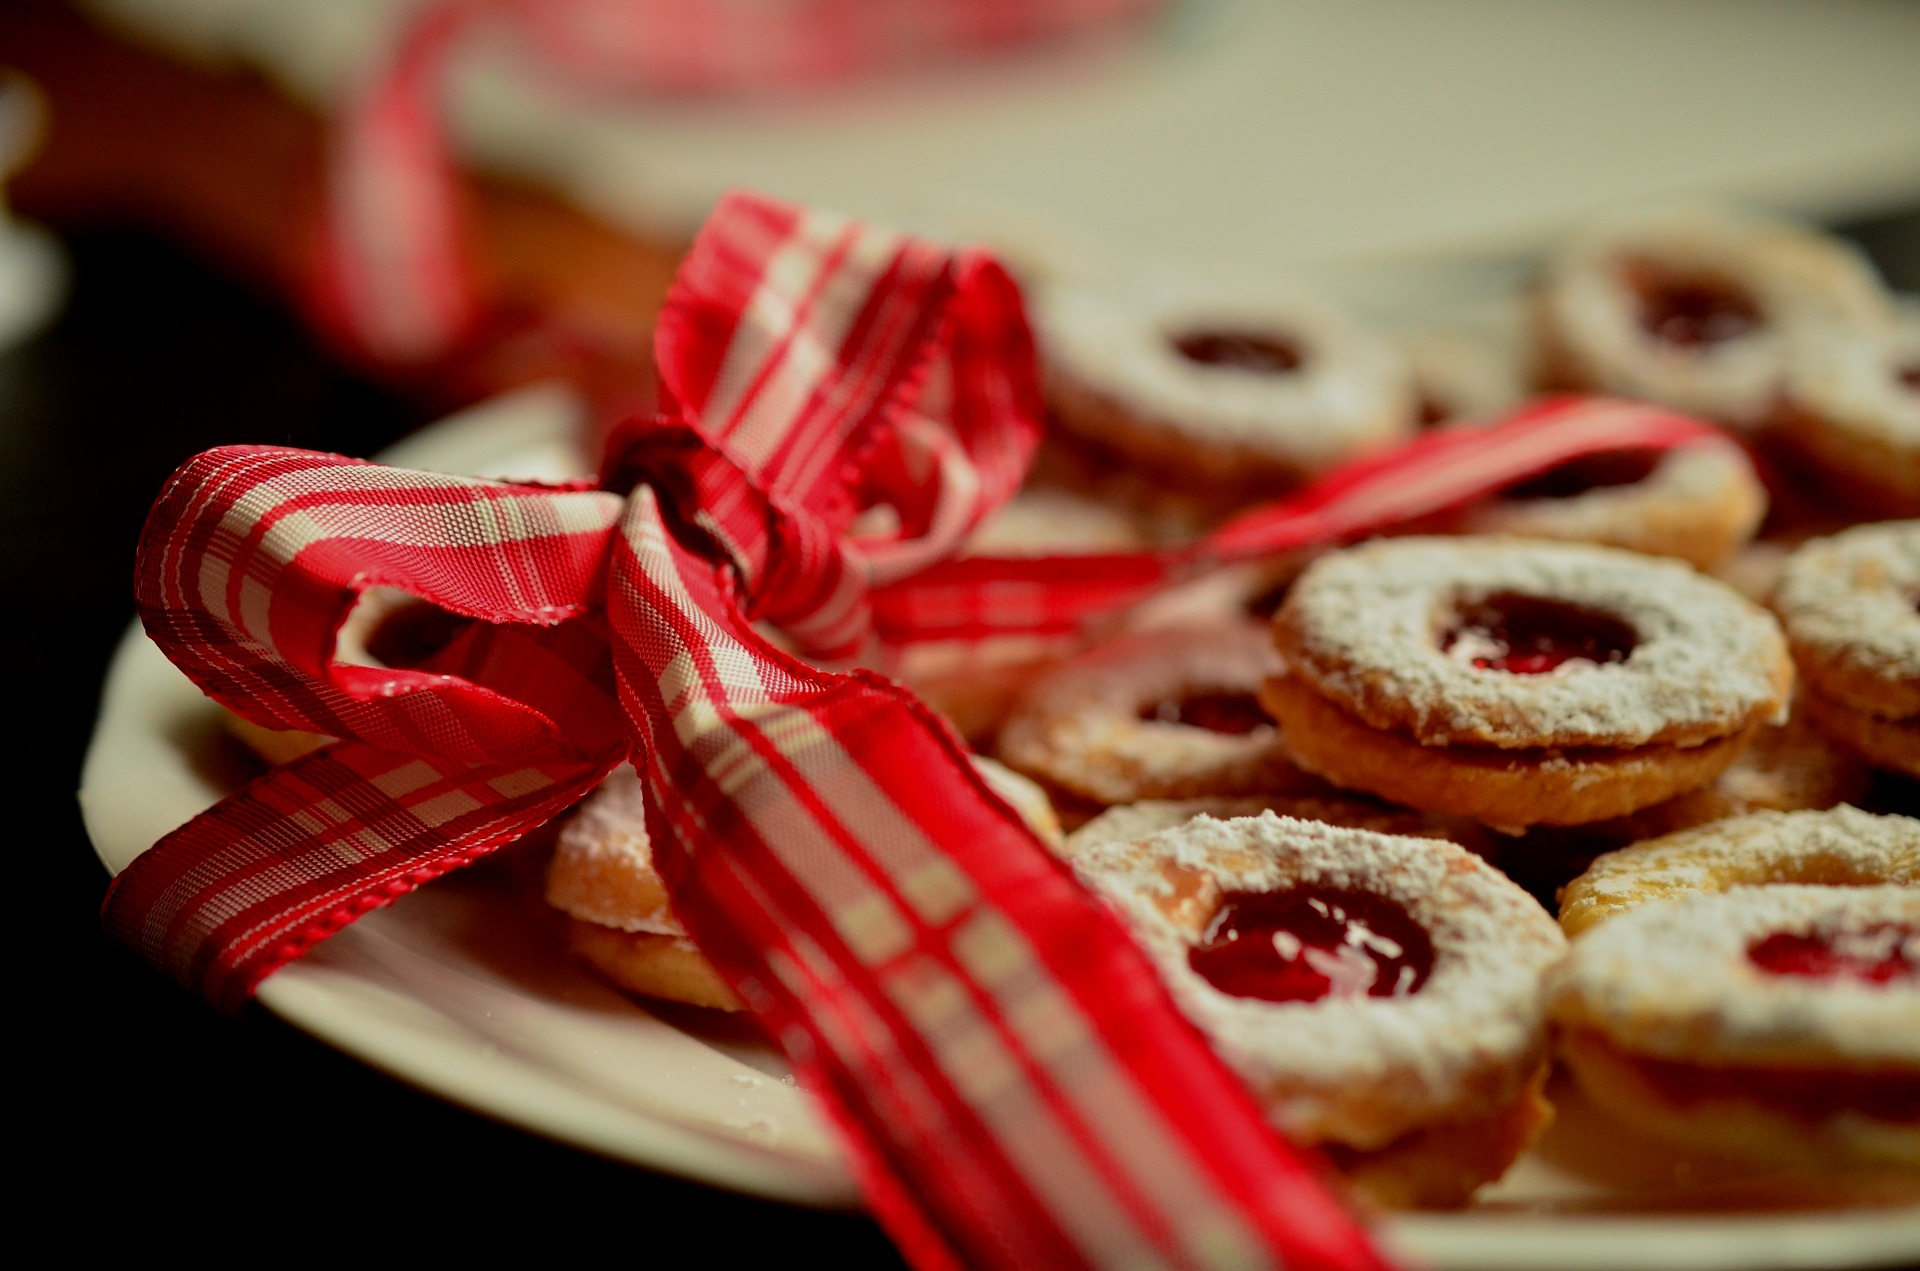 SET UP A COOKIE EXCHANGE -